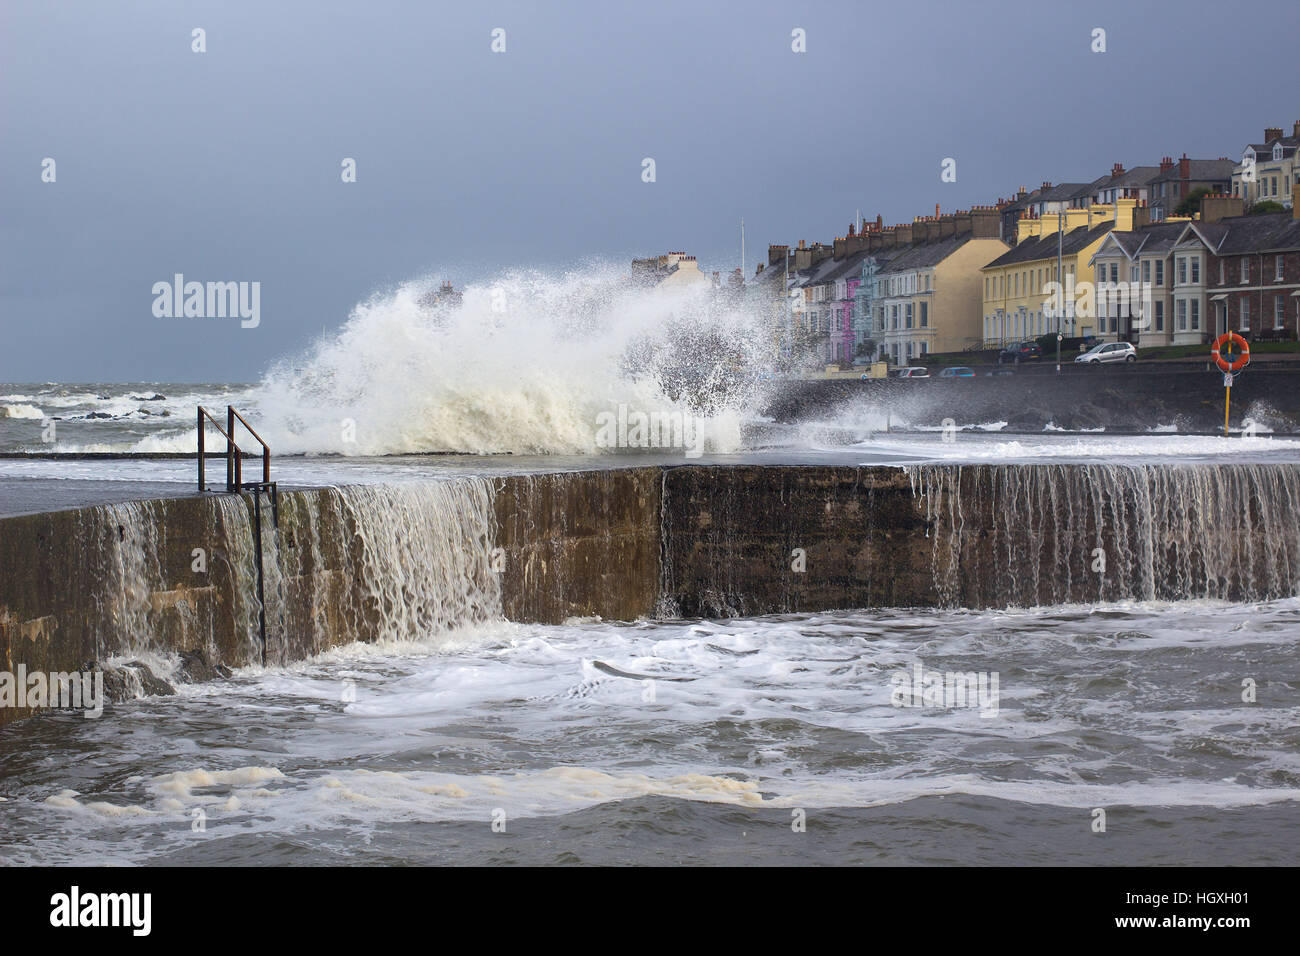 A winter storm buffets a harbor wall sending waves foam and spray into the air and curtains of water cascading into - Stock Image